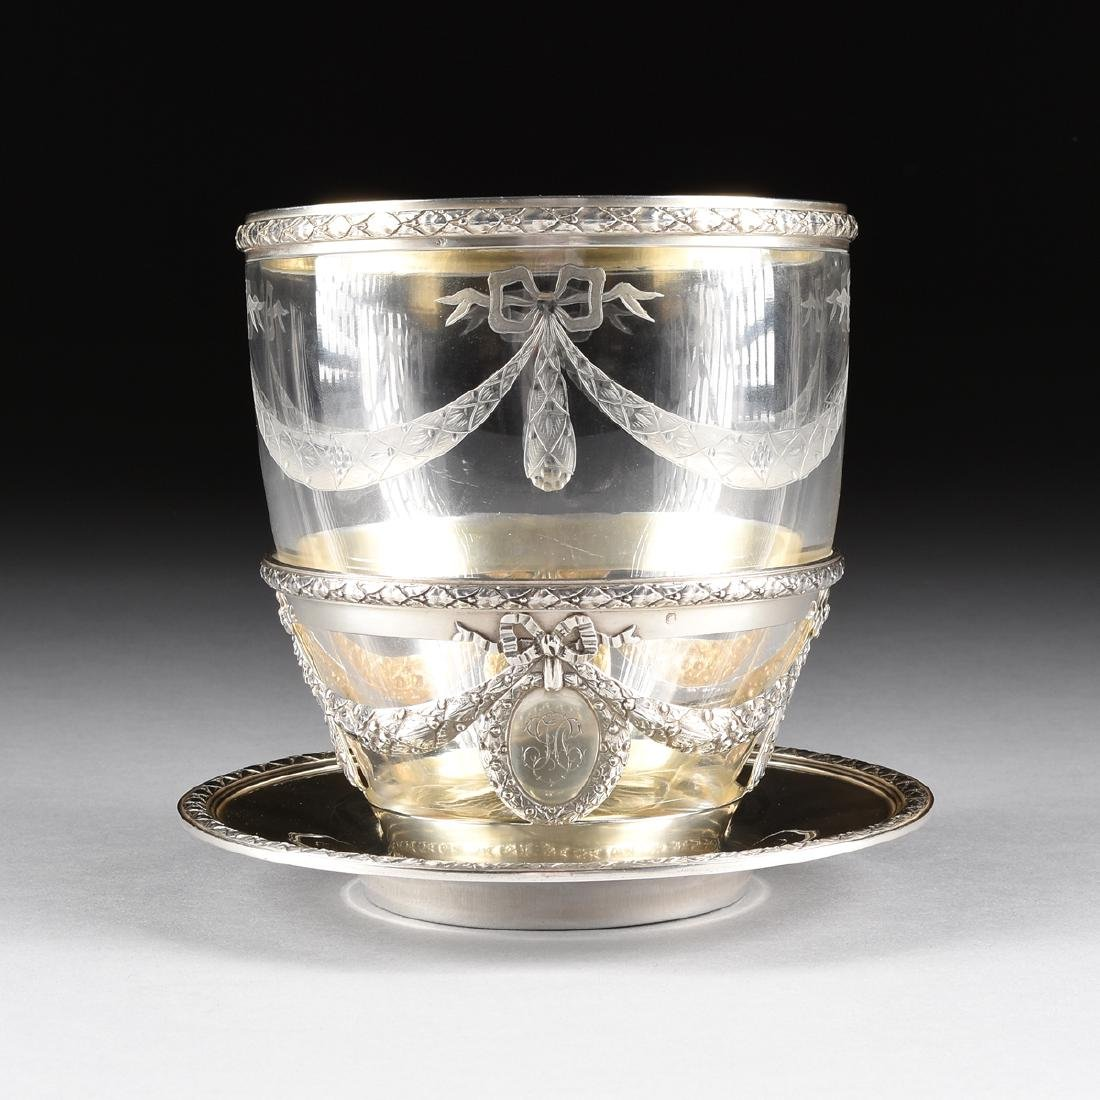 AN AUGUSTE LEROY & CIE 950 STANDARD SILVER AND ETCHED